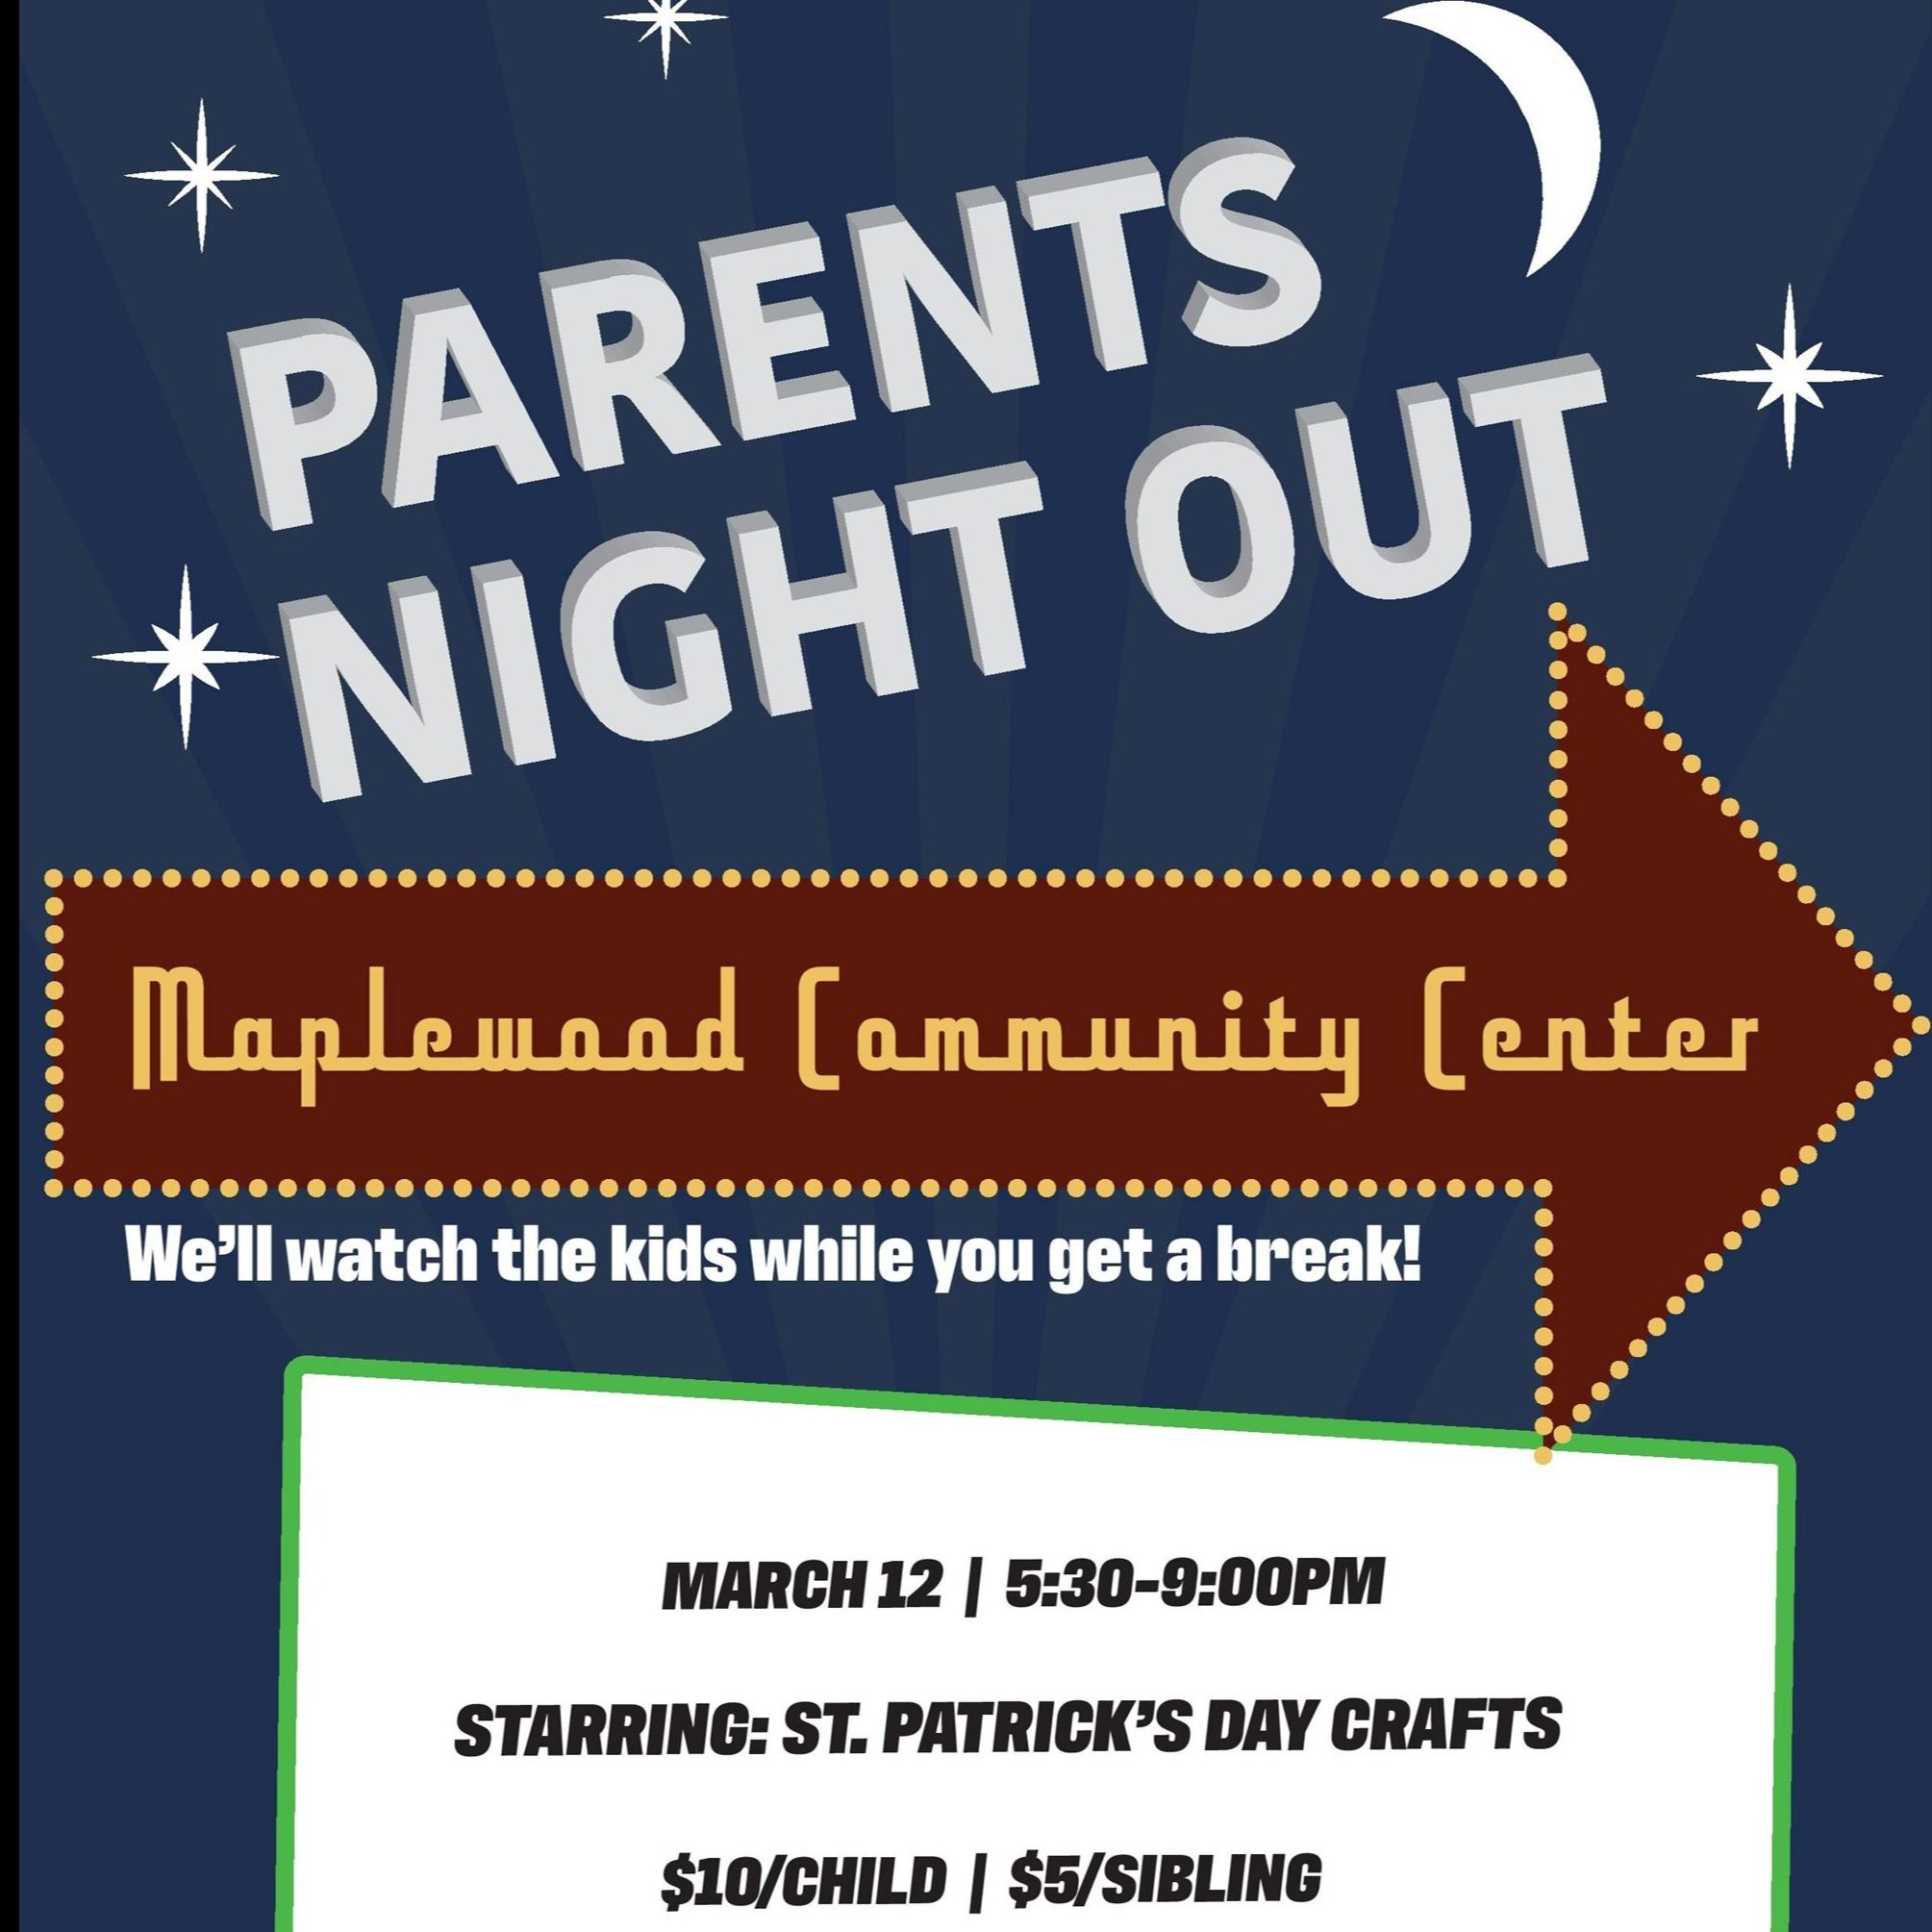 Parents Night Out Updated flyer